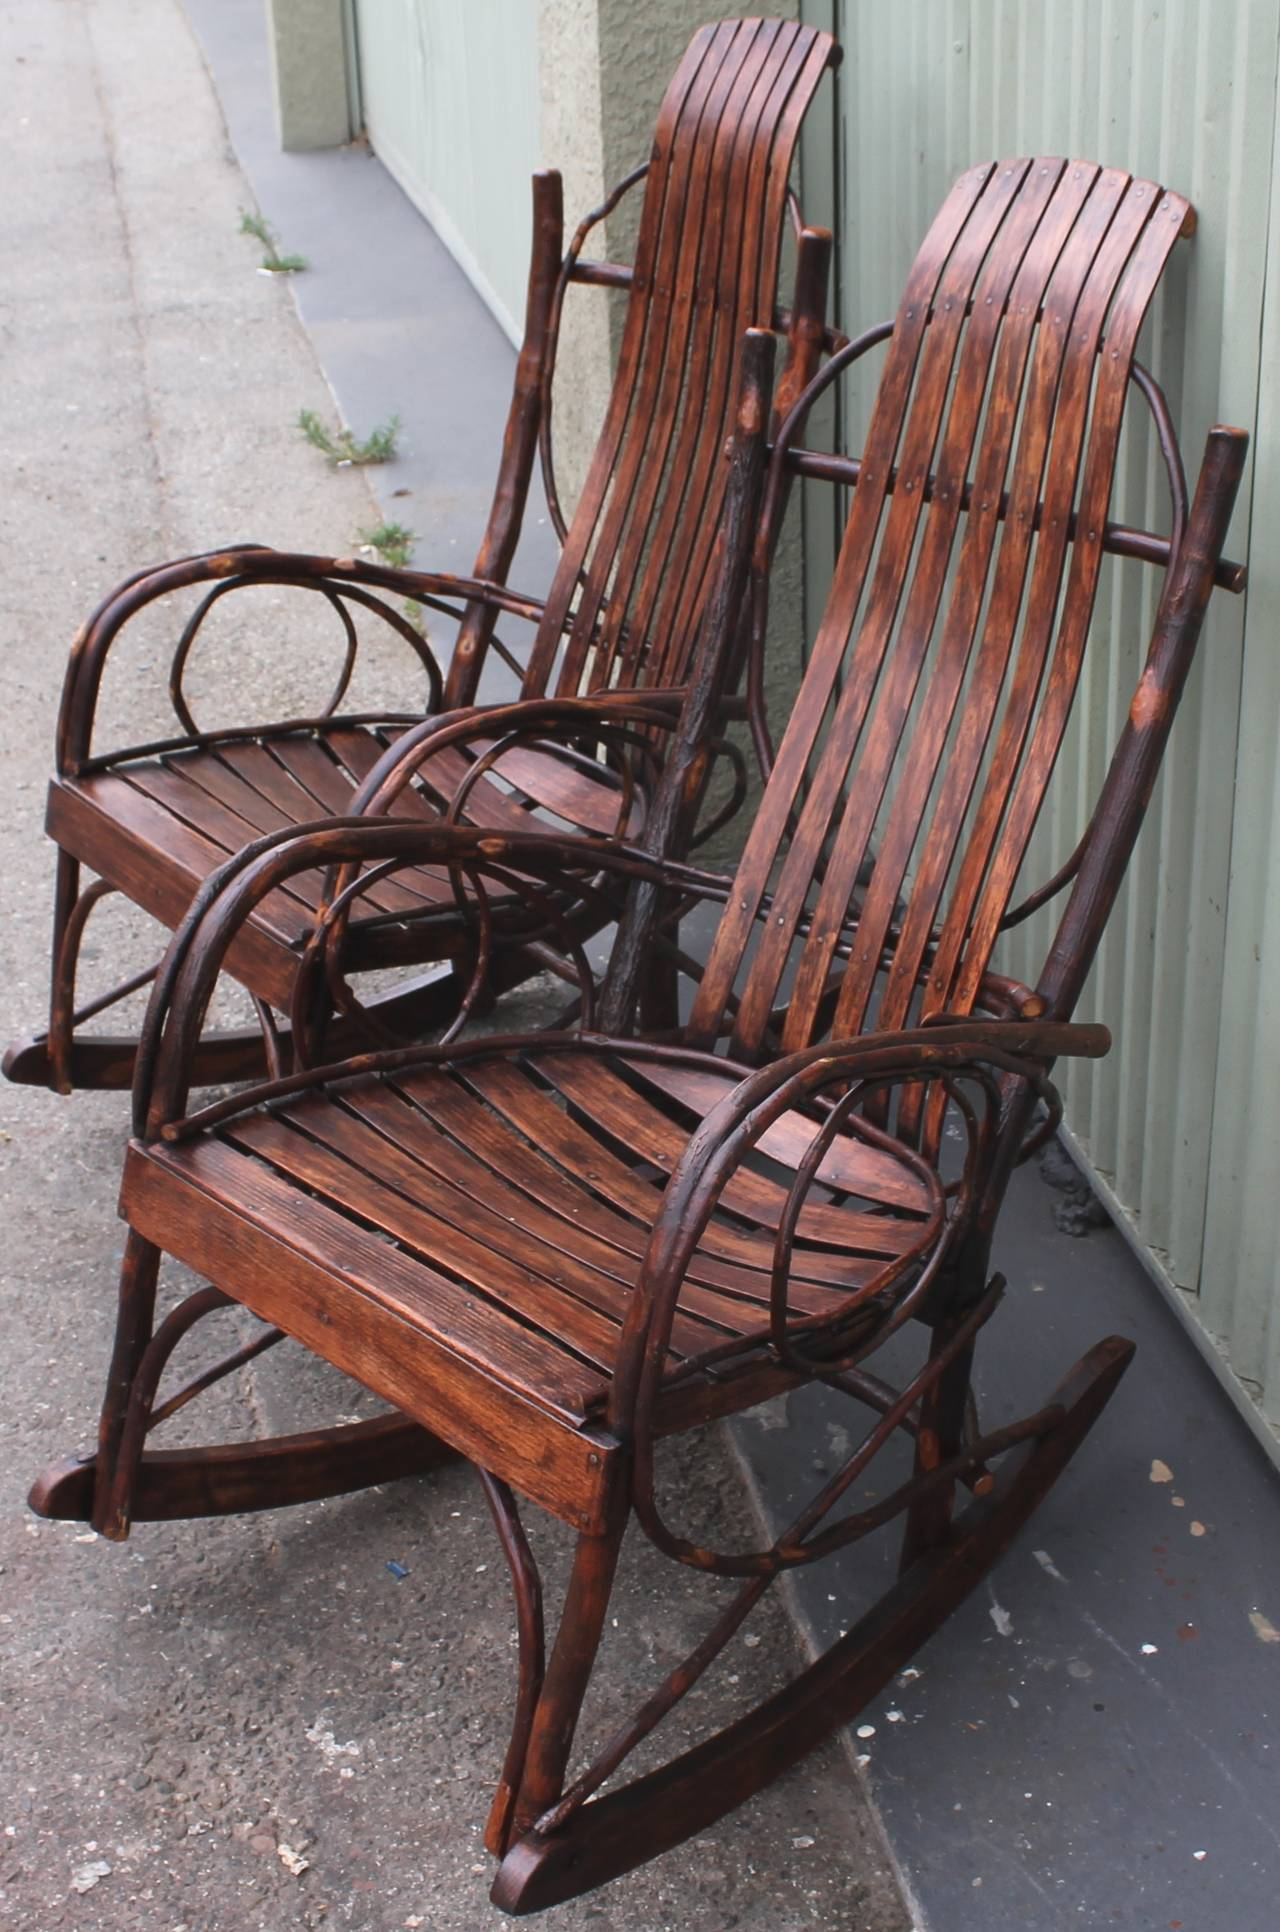 This Pair Of Amish Twig Rocking Chairs Are In Amazing As Found Condition.  These Chairs